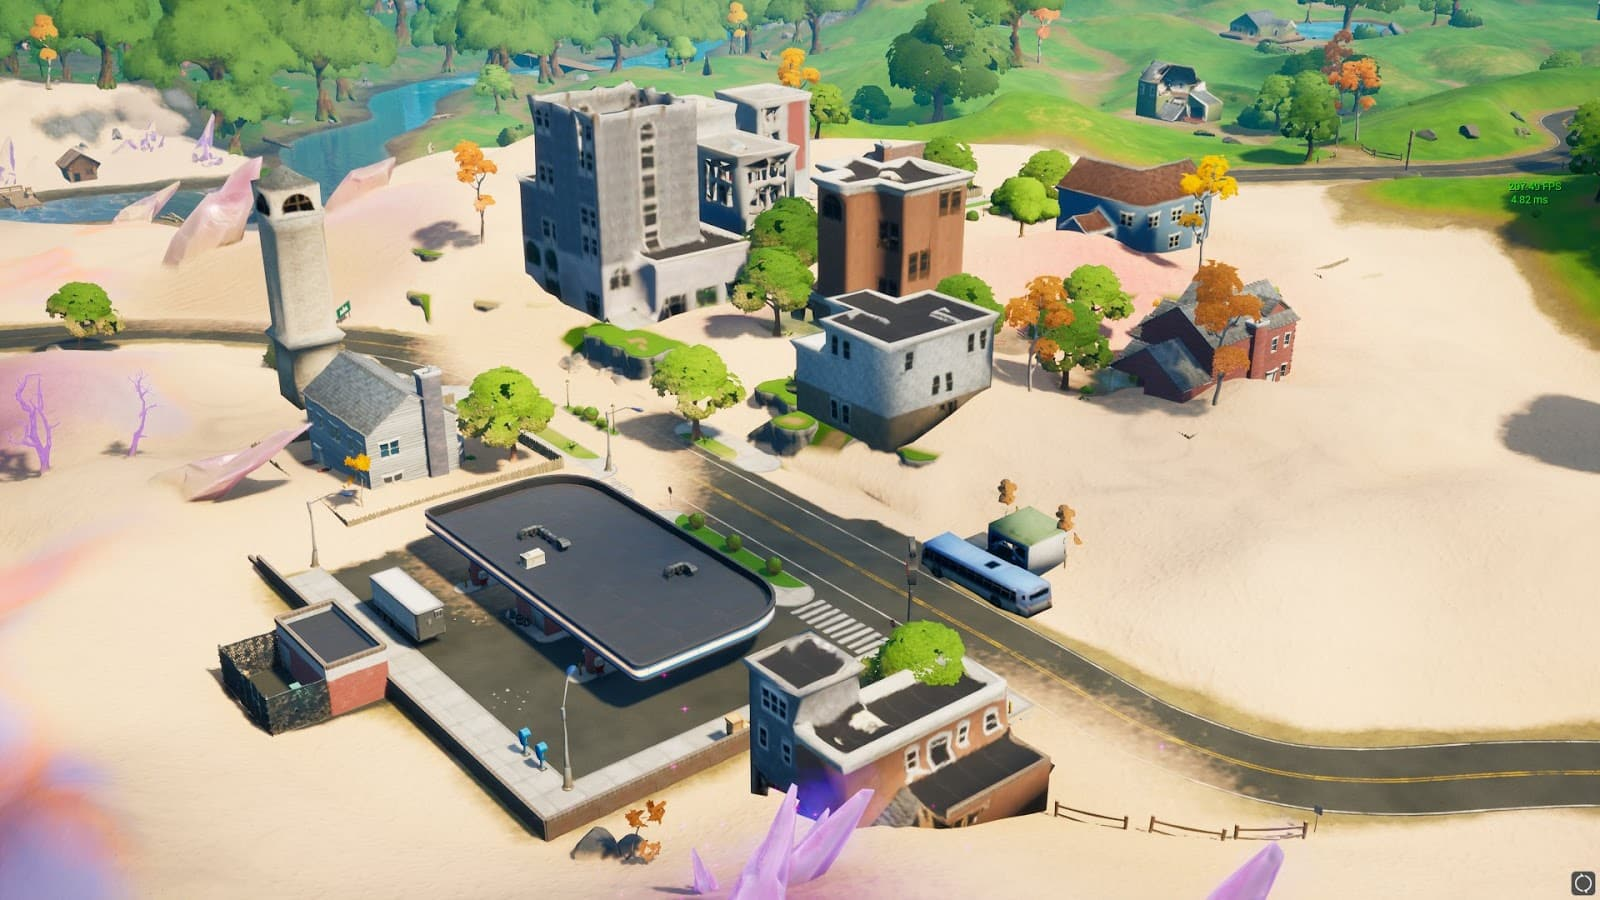 New location, Salty Towers, a desert style spin on the iconic Tilted Towers location